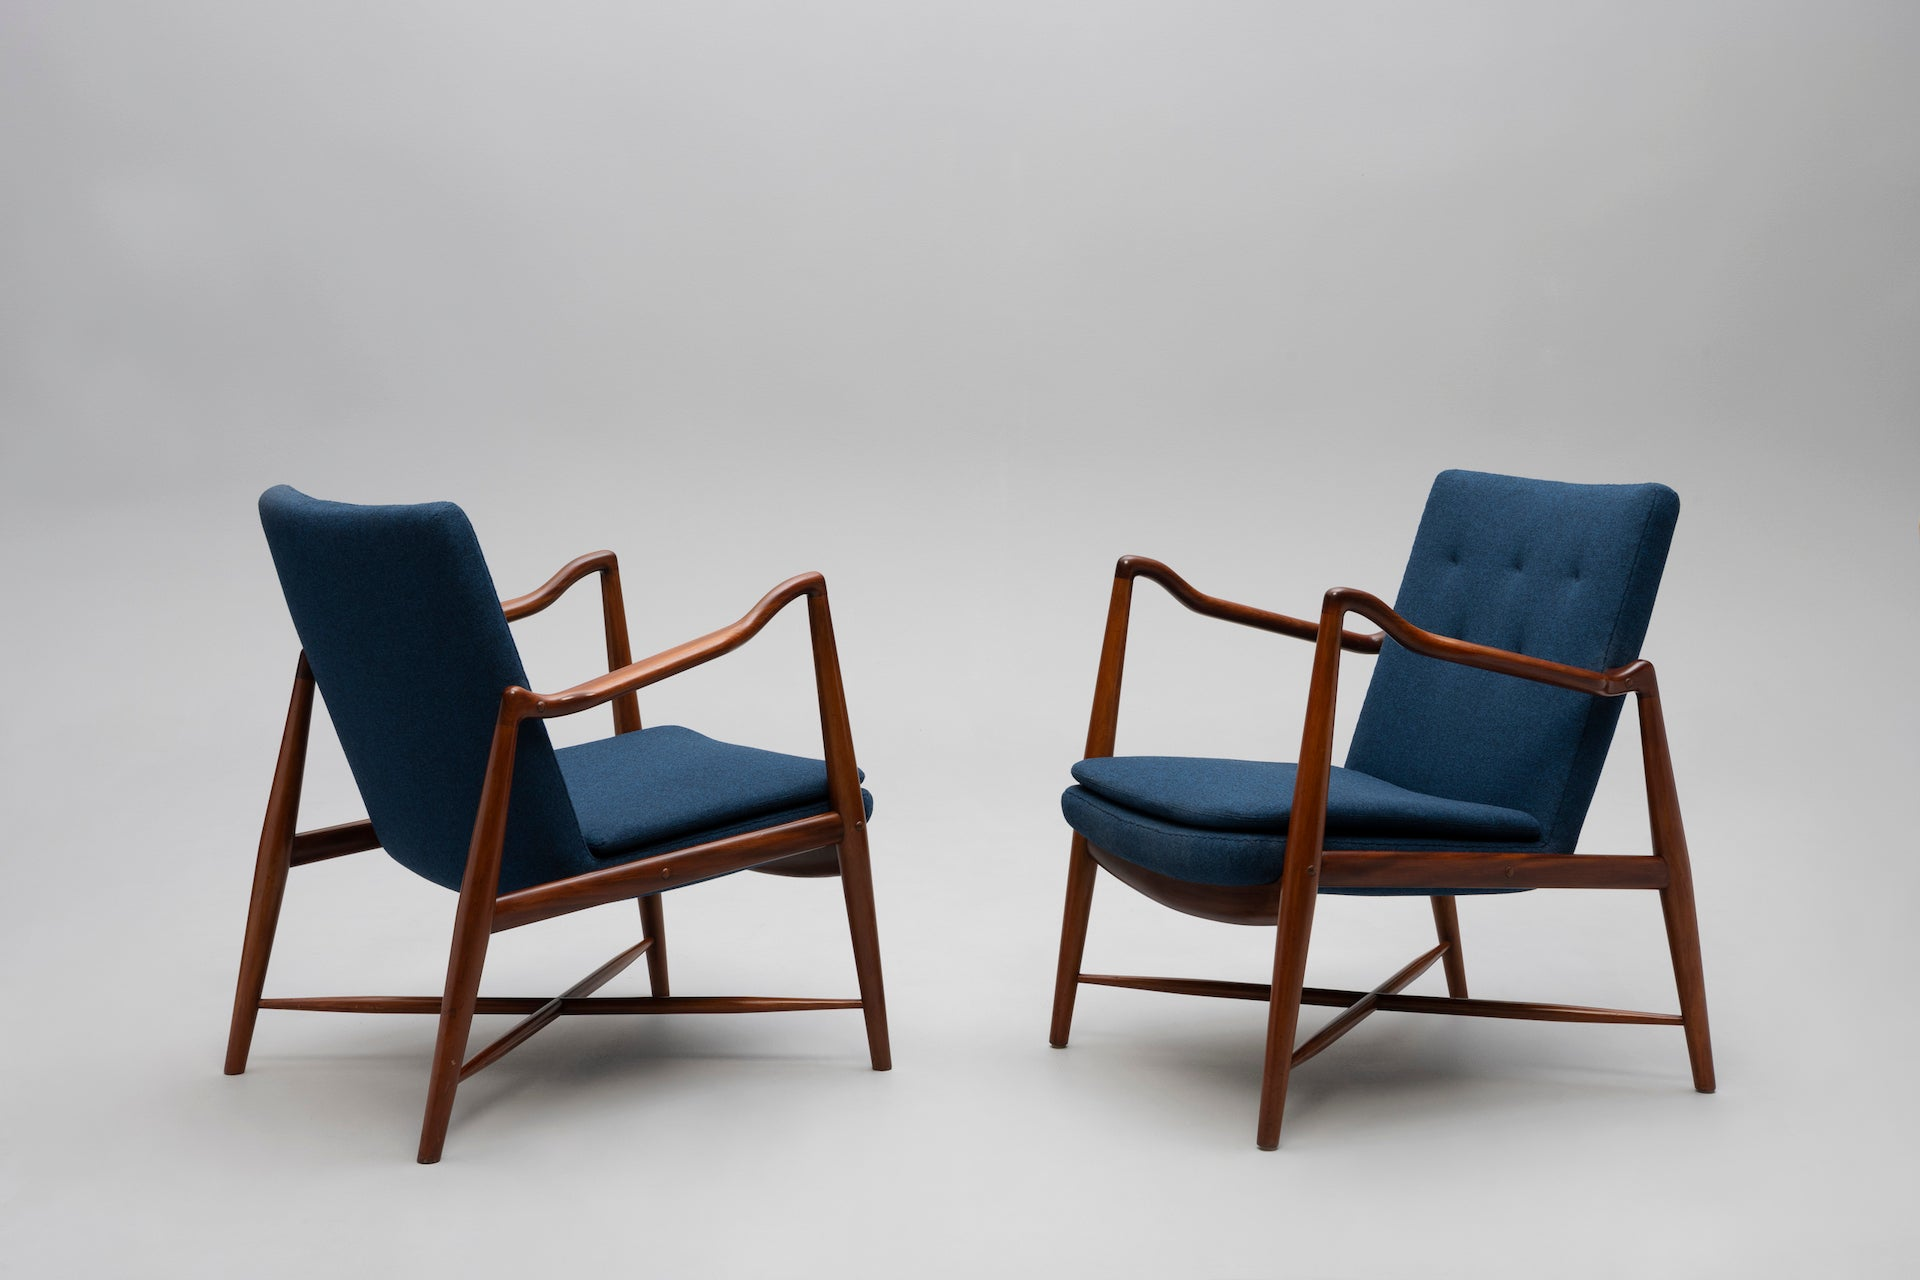 Rare Pair of Westermann Fireplace Armchairs by Finn Juhl, 1945. Photo © Jacksons